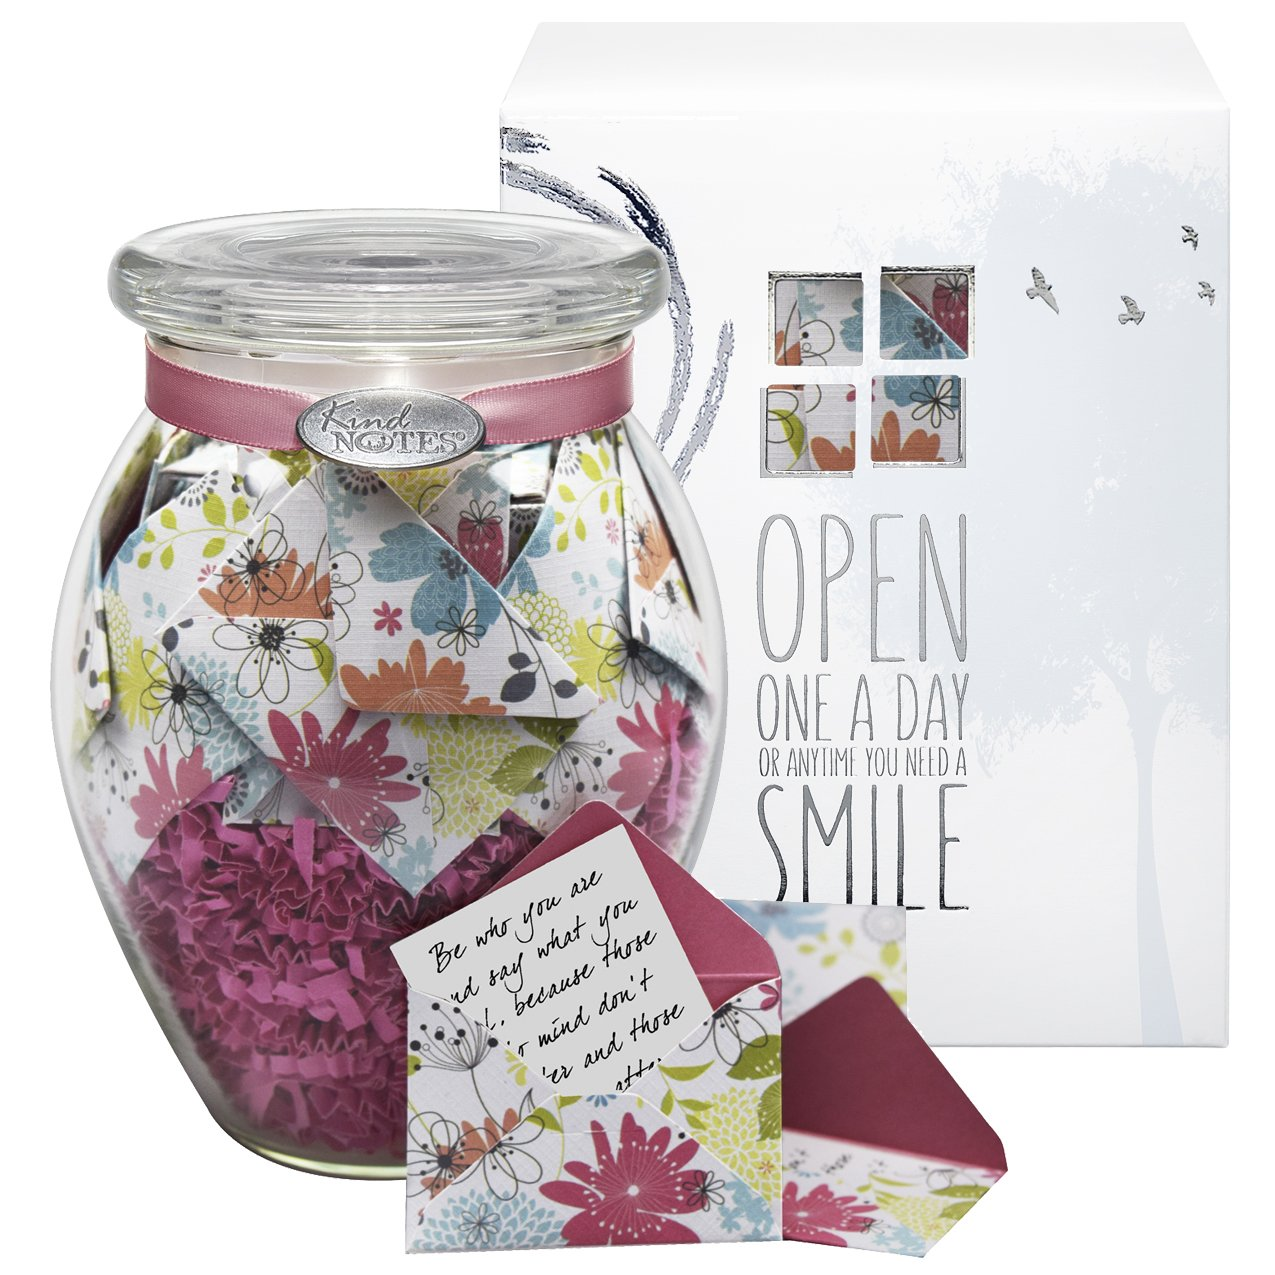 KindNotes Glass LONG DISTANCE RELATIONSHIP Keepsake Gift Jar of Messages for Him or Her Birthday, Anniversary, Just Because - Refreshing Floral